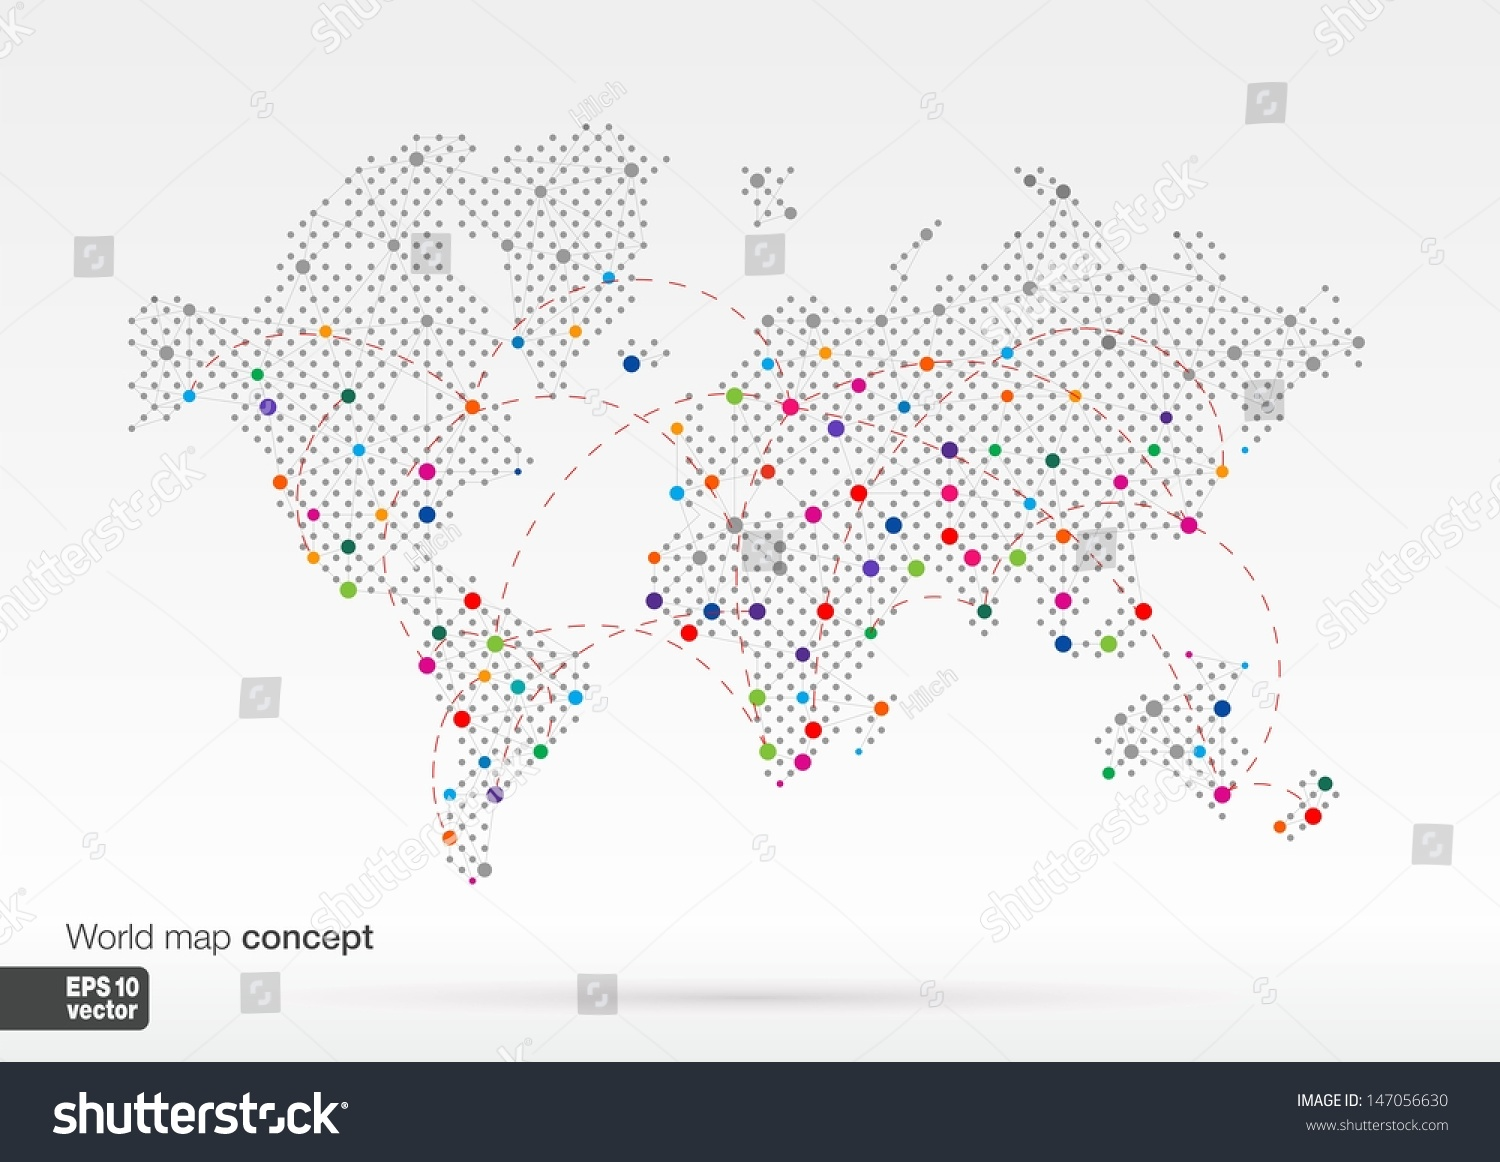 Stylized world map concept biggest cities stock vector 147056630 stylized world map concept with biggest cities globes business backgroundlorful vector illustration gumiabroncs Gallery